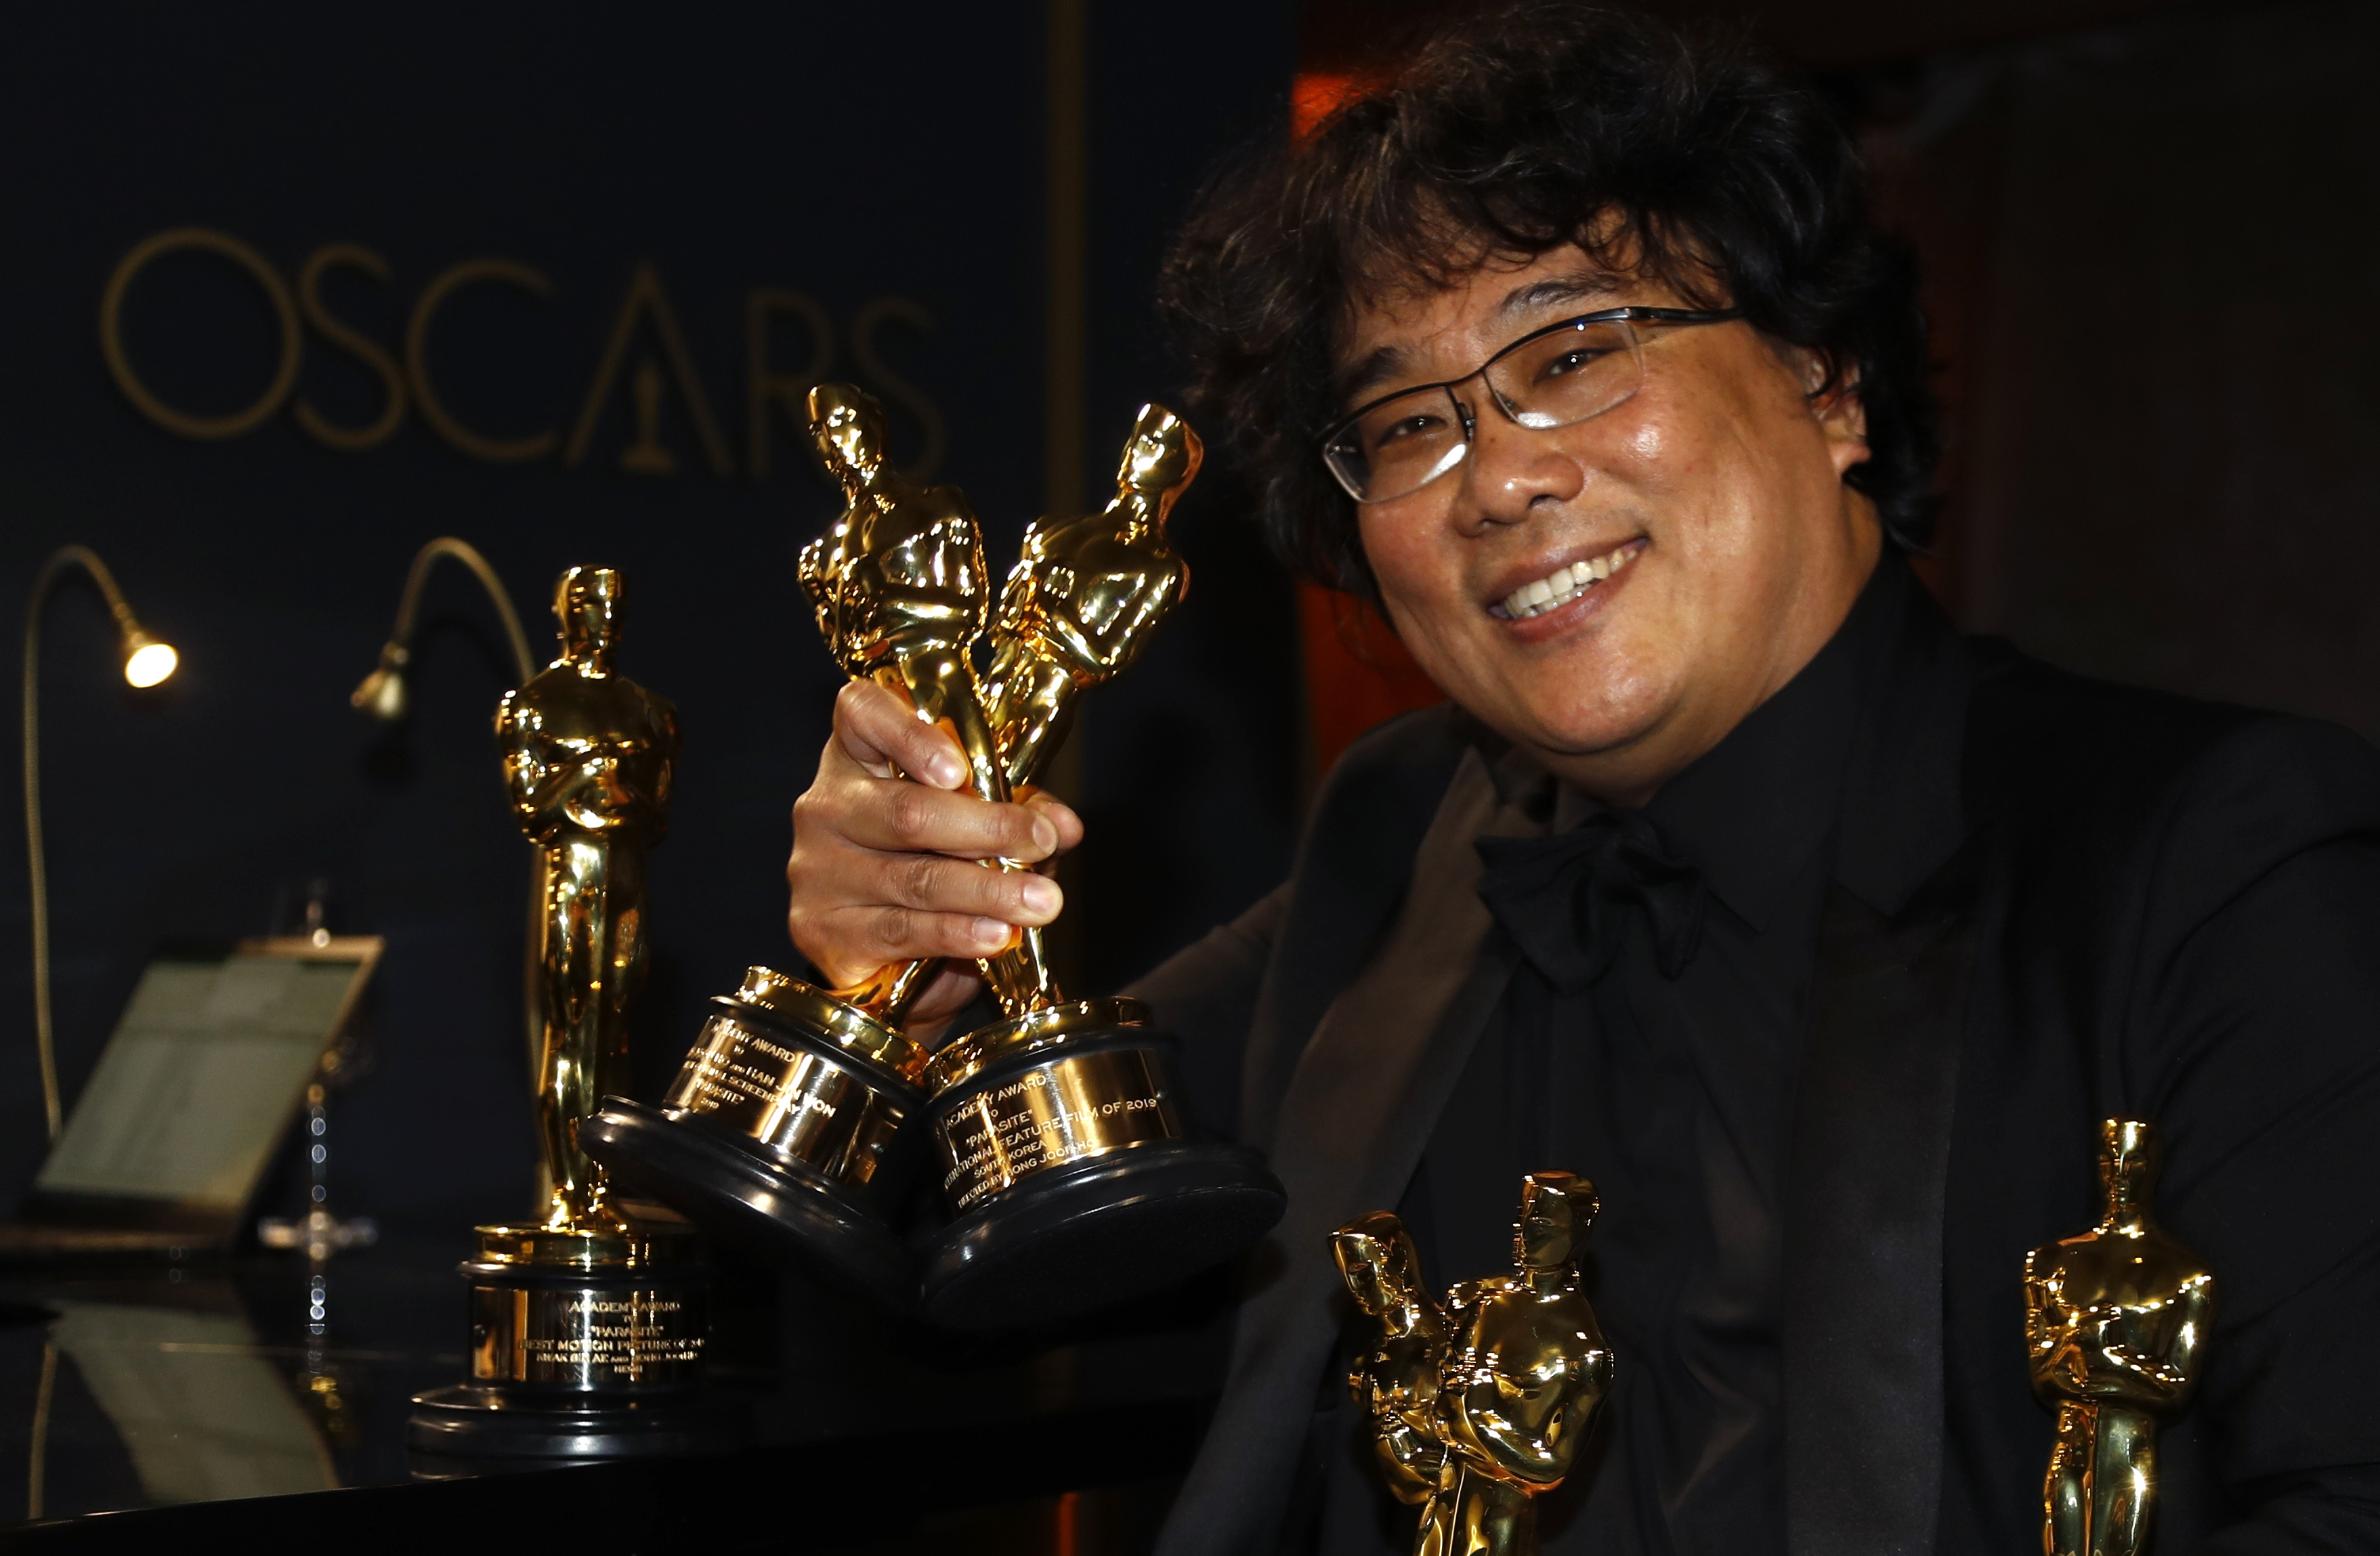 """Bong Joon Ho poses with the Oscars for """"Parasite"""" at the Governors Ball following the 92nd Academy Awards in Los Angeles, California, U.S., February 9, 2020. REUTERS/Eric Gaillard"""